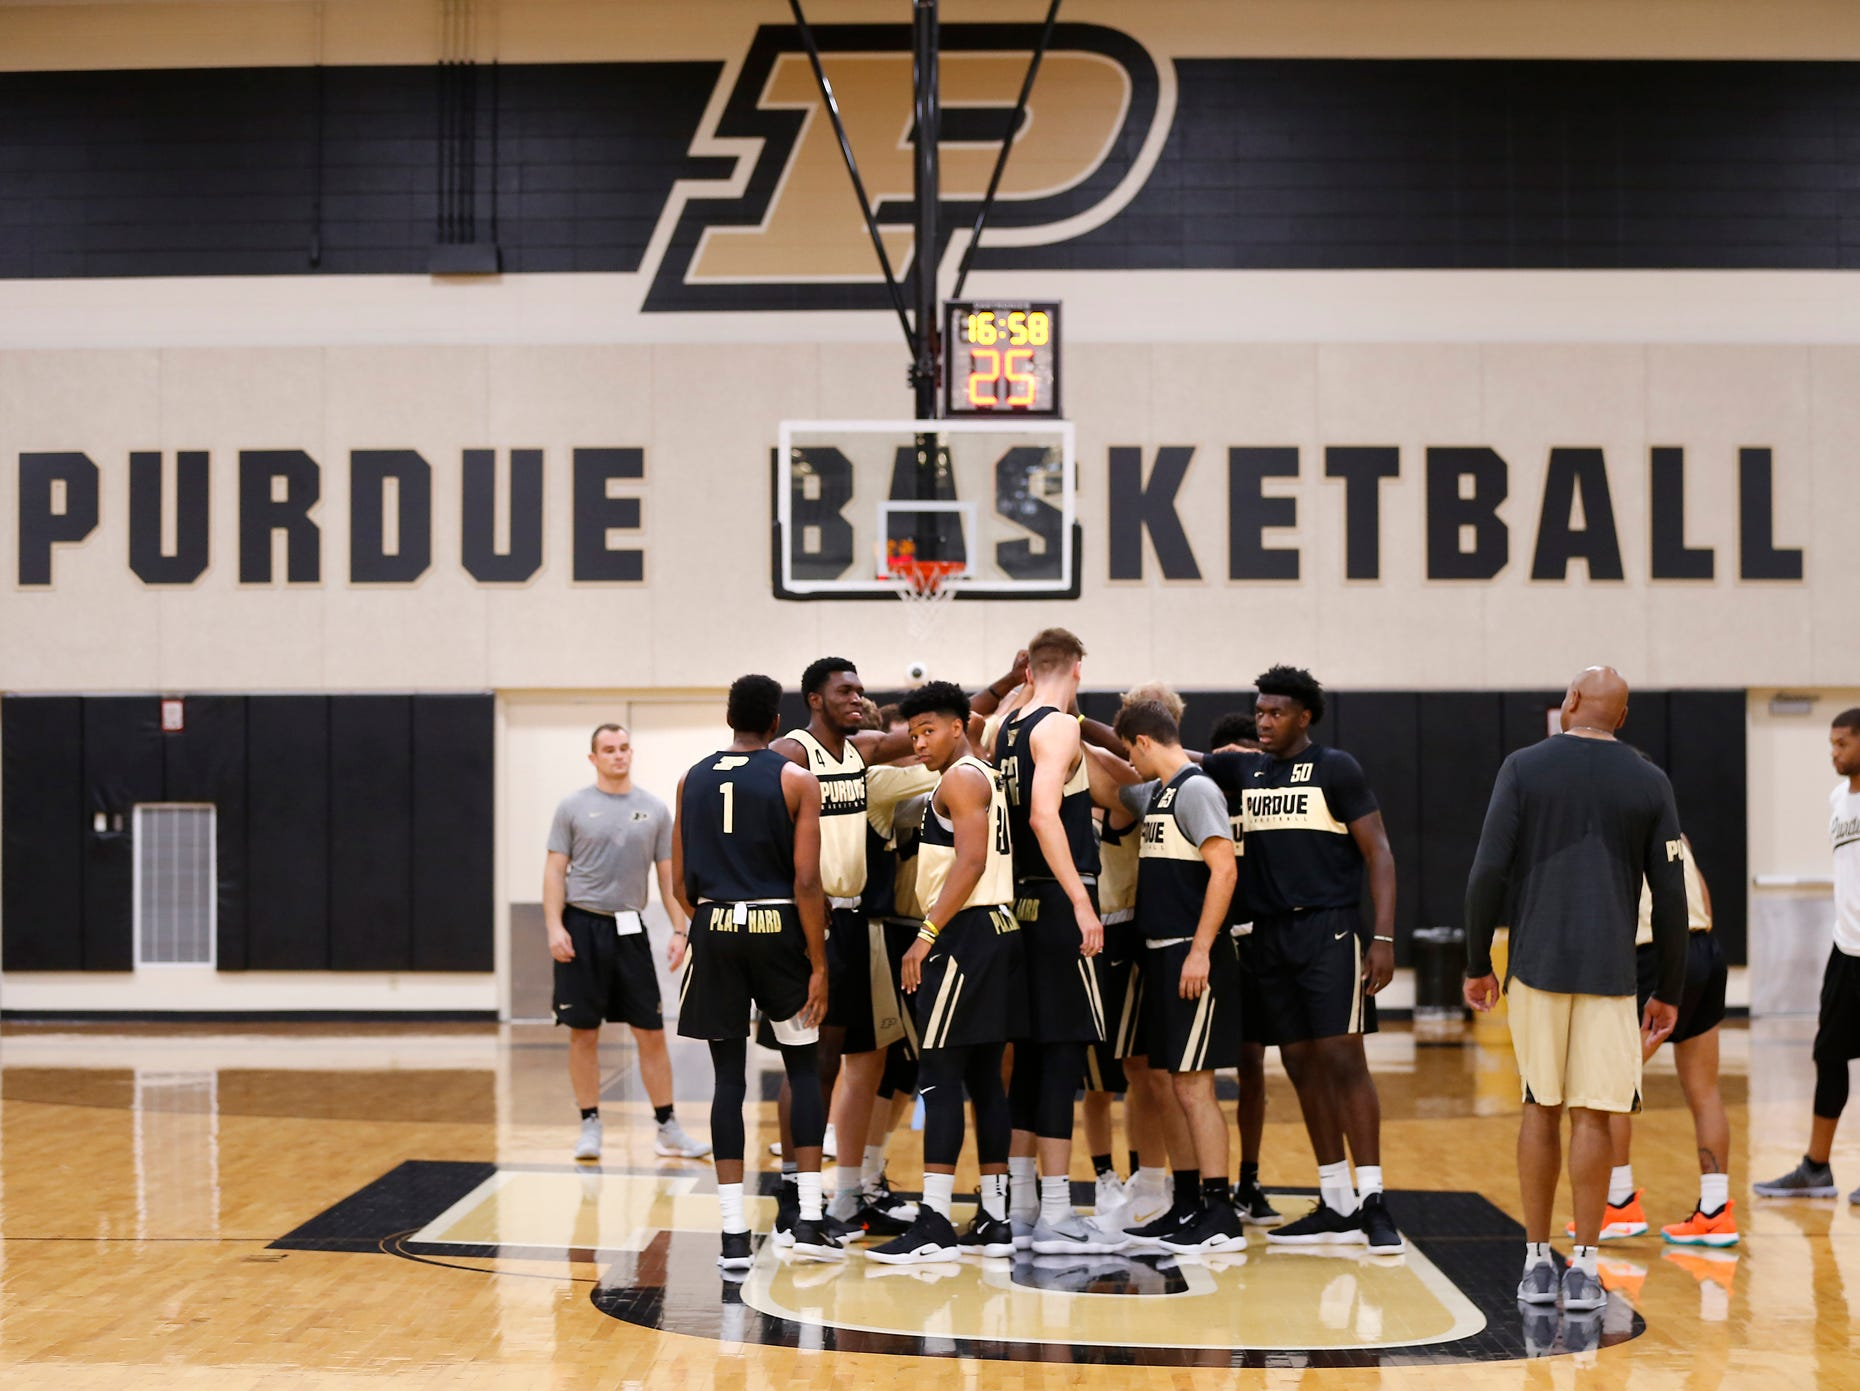 Purdue players join hands at the start of the first official practice of the season Tuesday, September 25, 2018, at Cardinal Court in Mackey Arena.